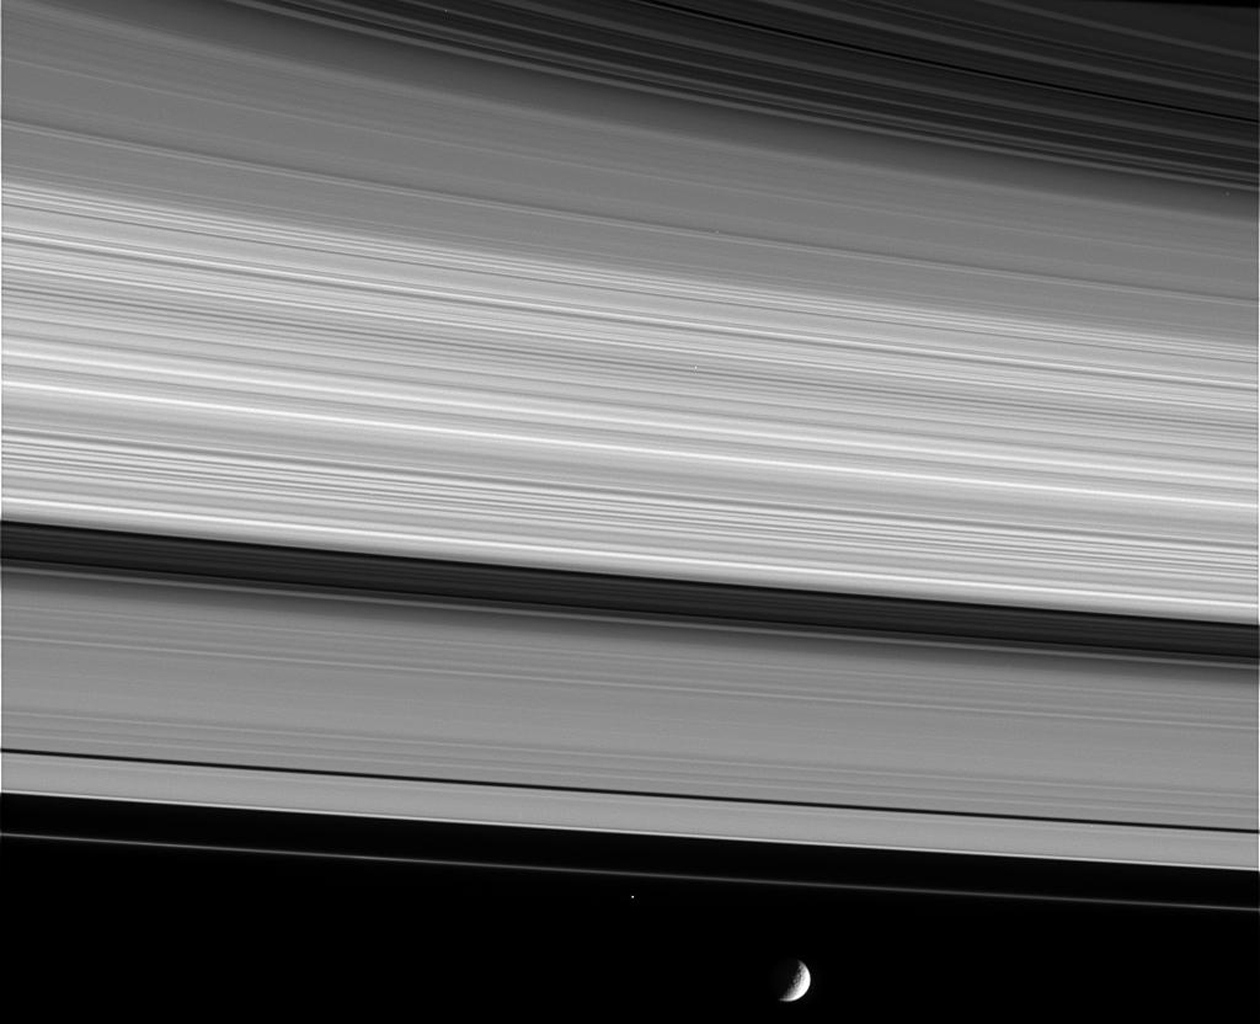 This image captured by NASA's Cassini spacecraft shows, from upper right to lower left, the thin C ring, multi-toned B ring, the dark Cassini Division, the A ring and narrow F ring.